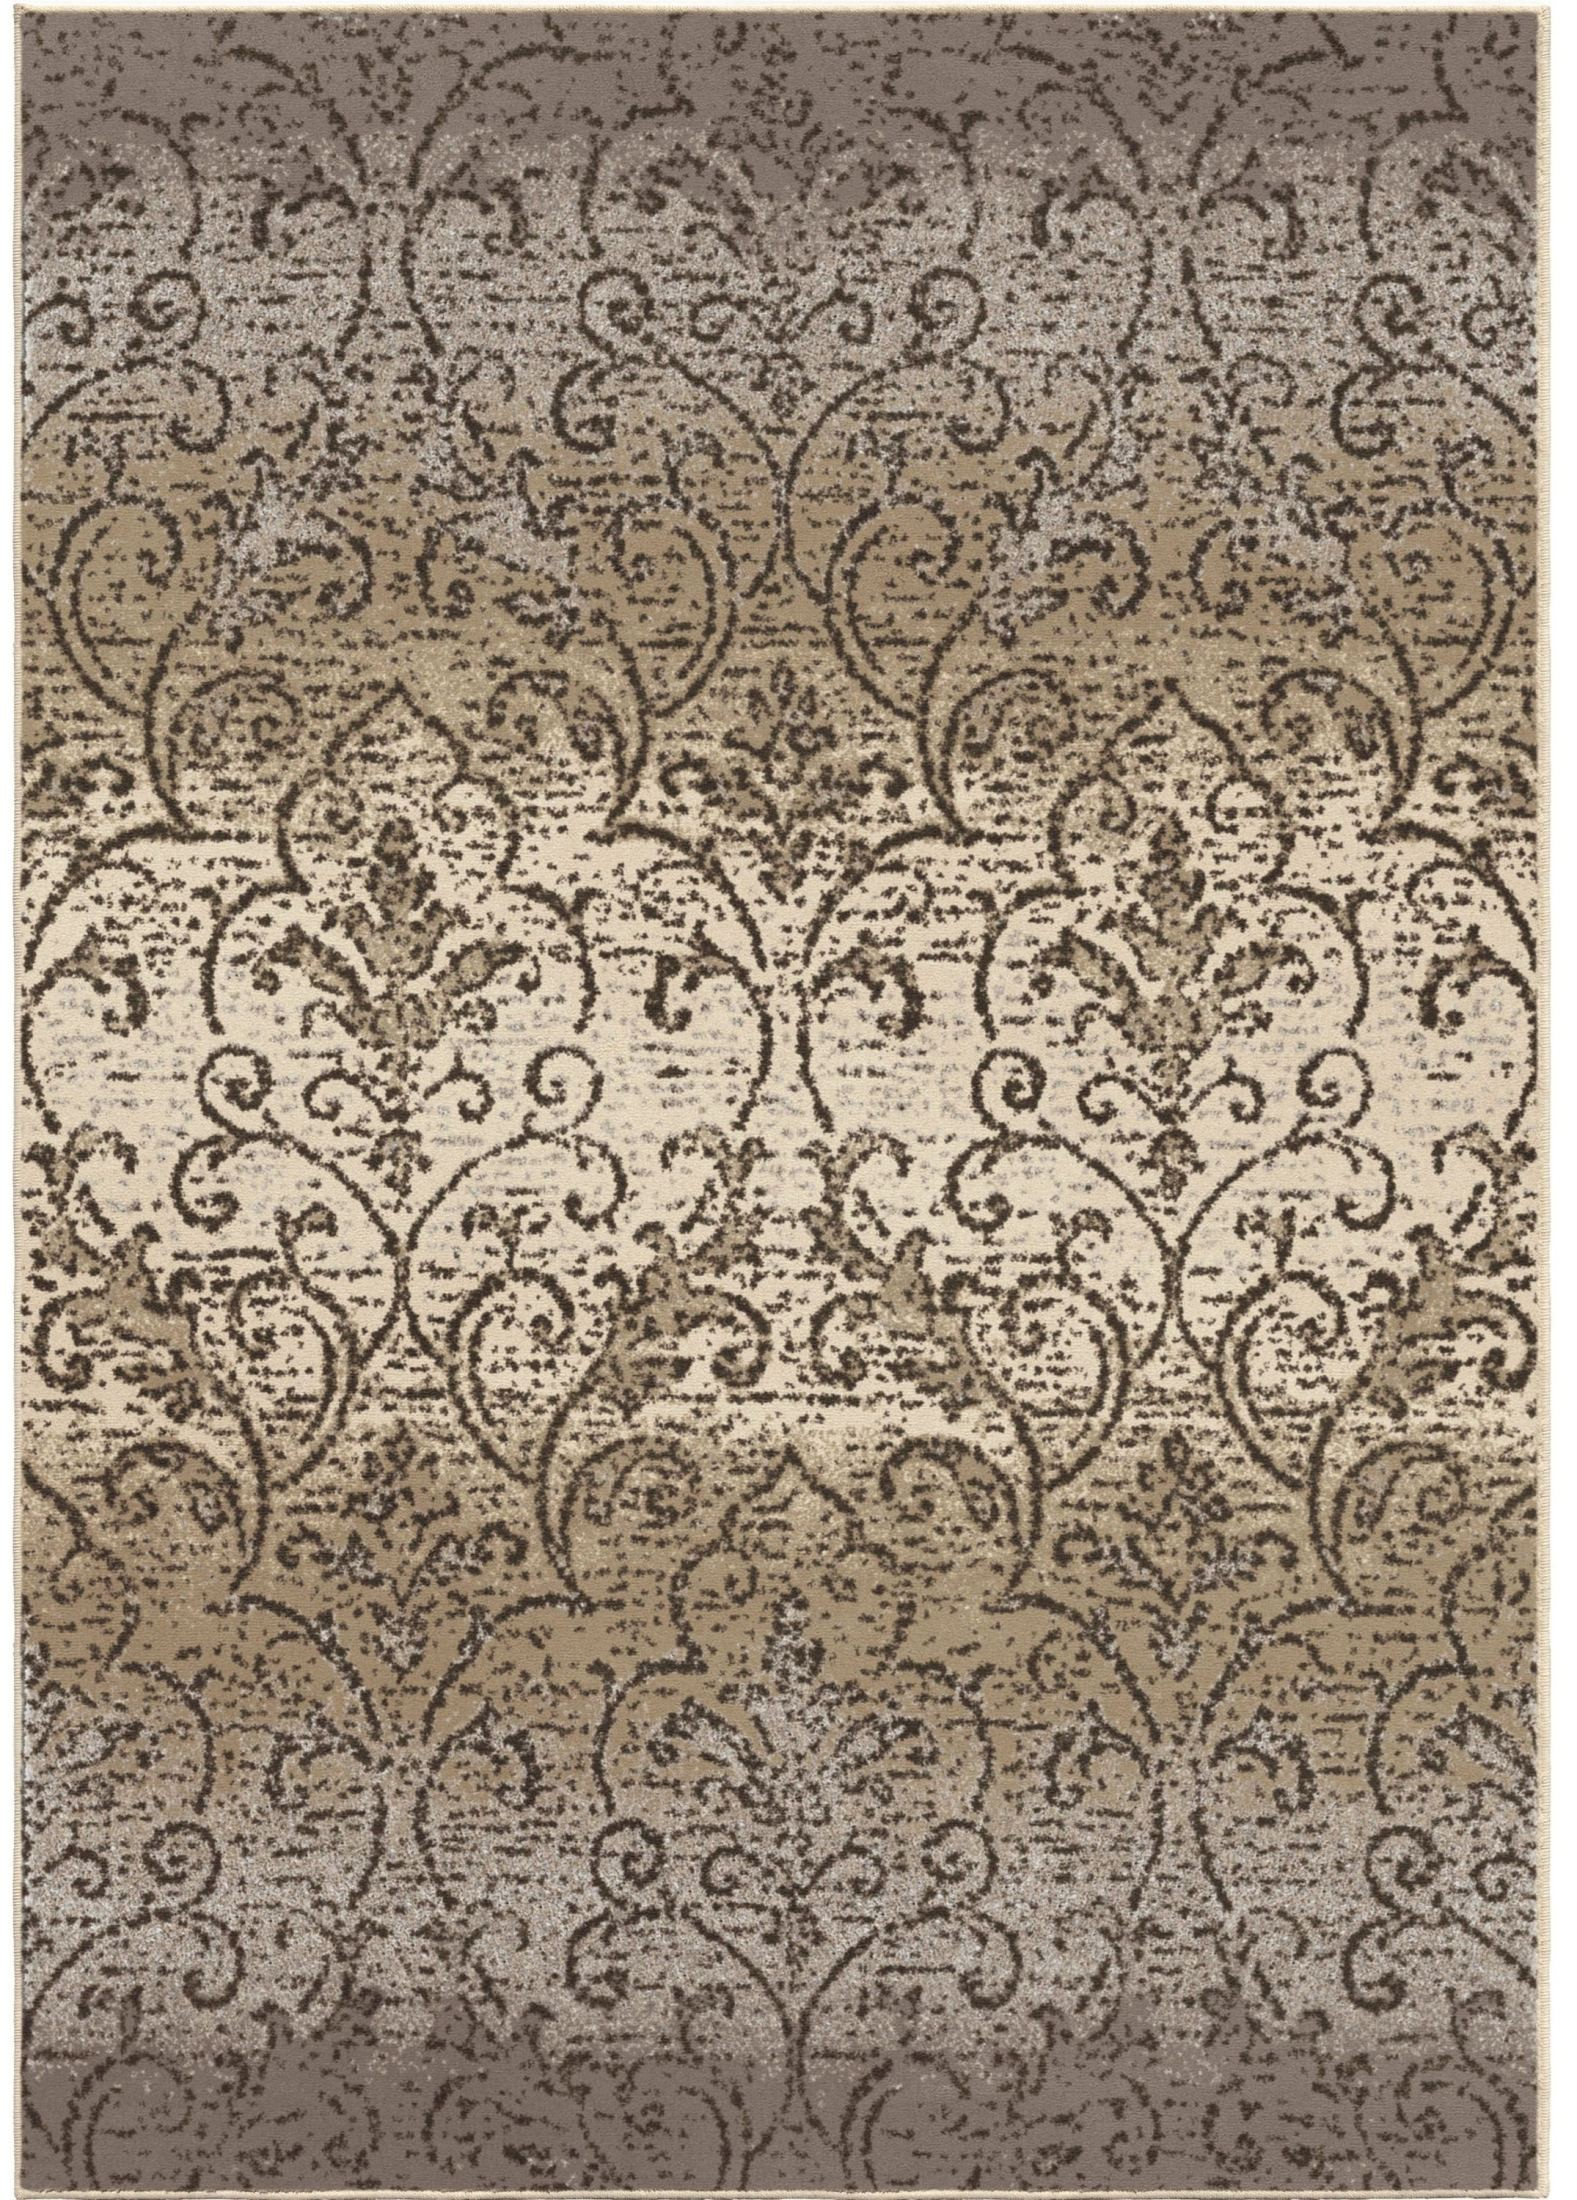 Epiphany Soft Scroll Fontaine Gray Large Area Rug From